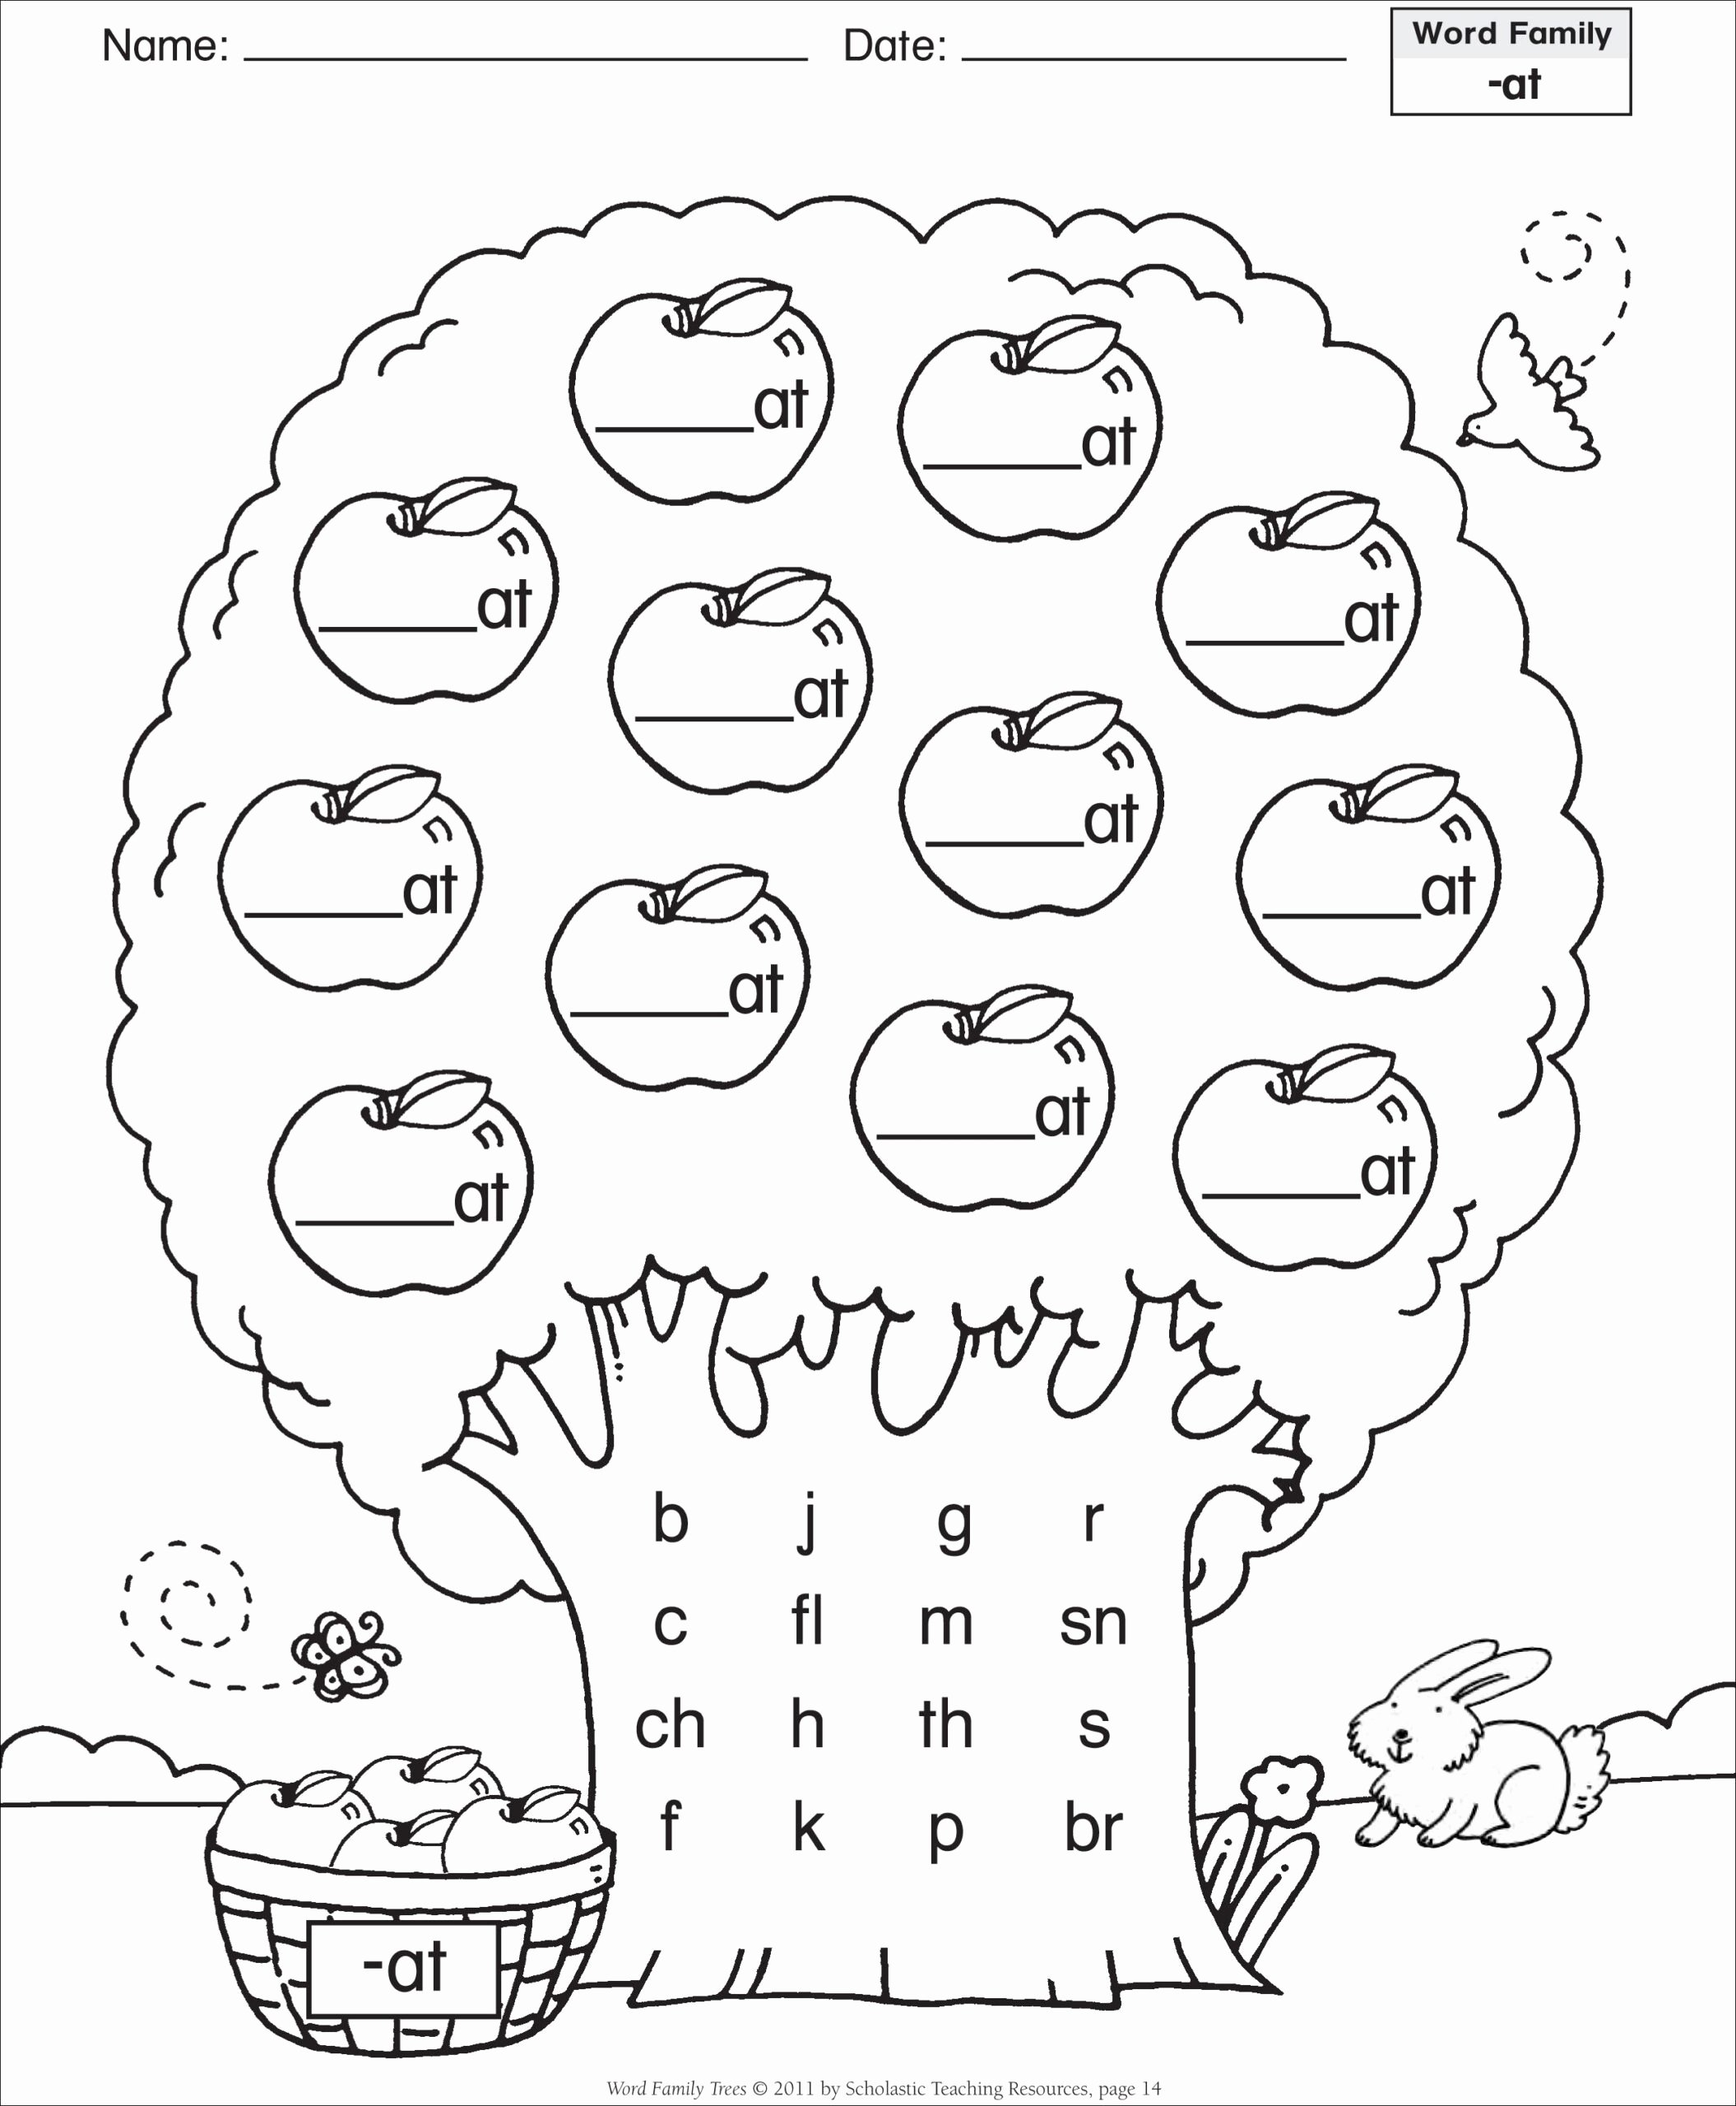 Vowels Worksheets for Preschoolers Printable Worksheets Word Family Template Short Vowel at Tree 4th